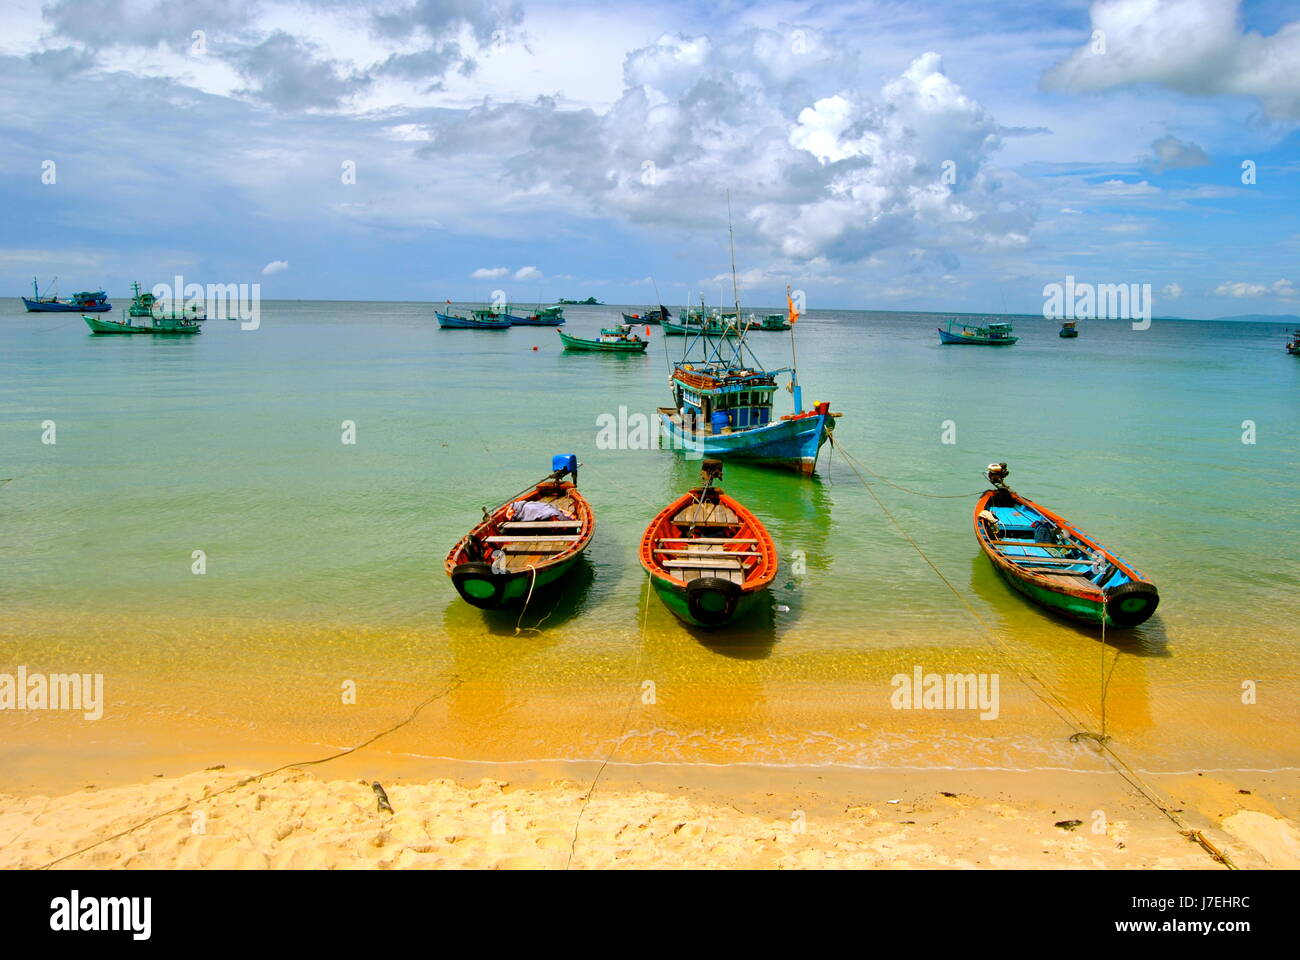 Boats in the sea, Phu Quoc island, Vietnam - Stock Image